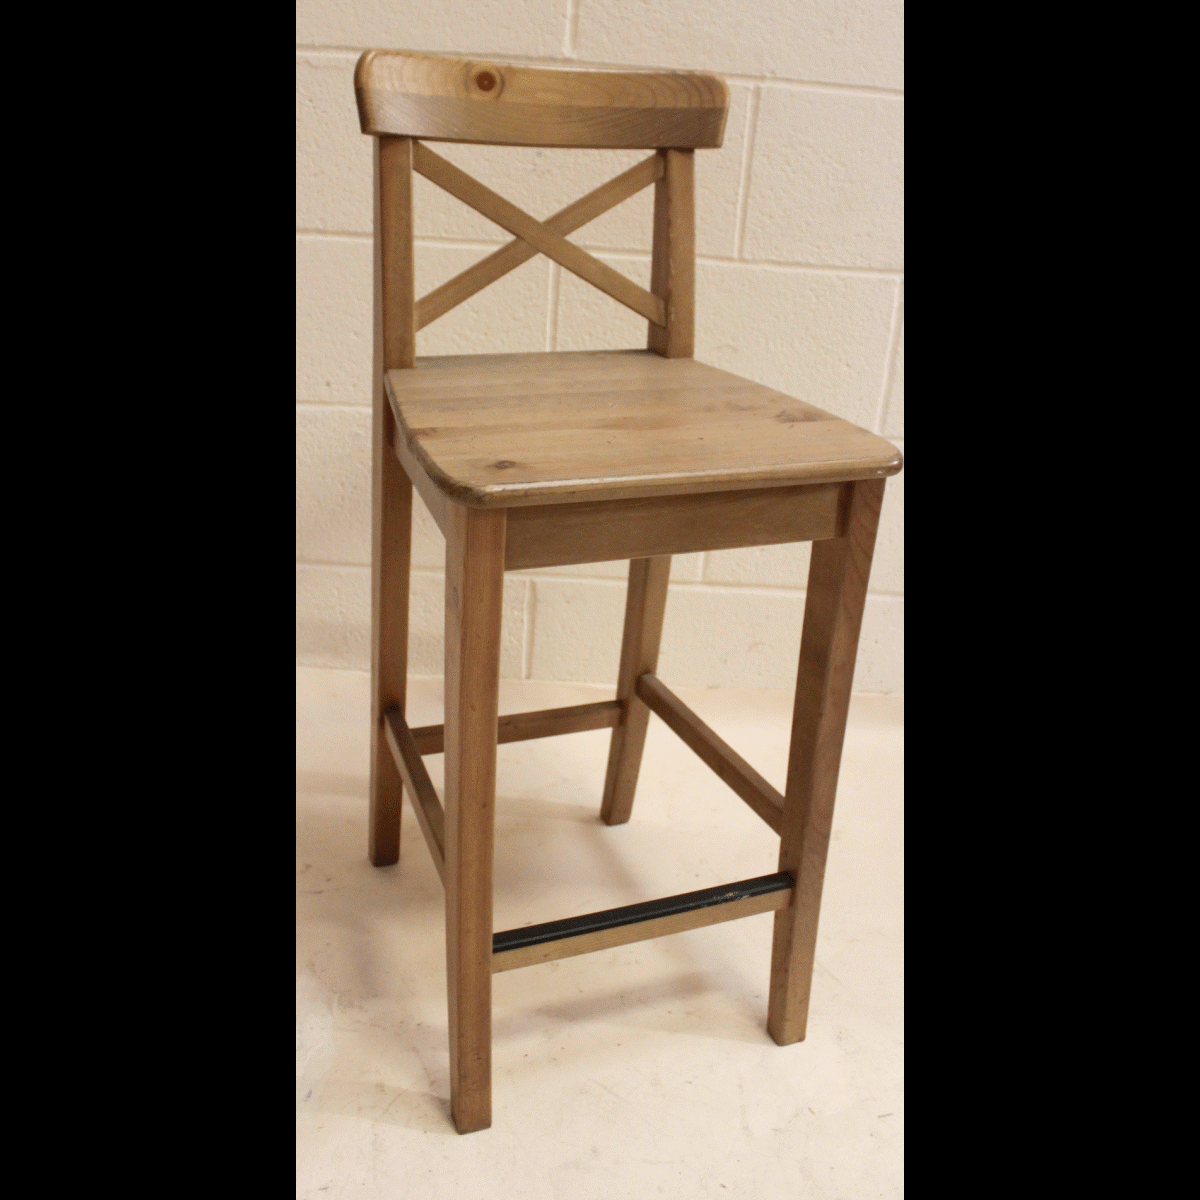 All wood bar stools cm long by wide